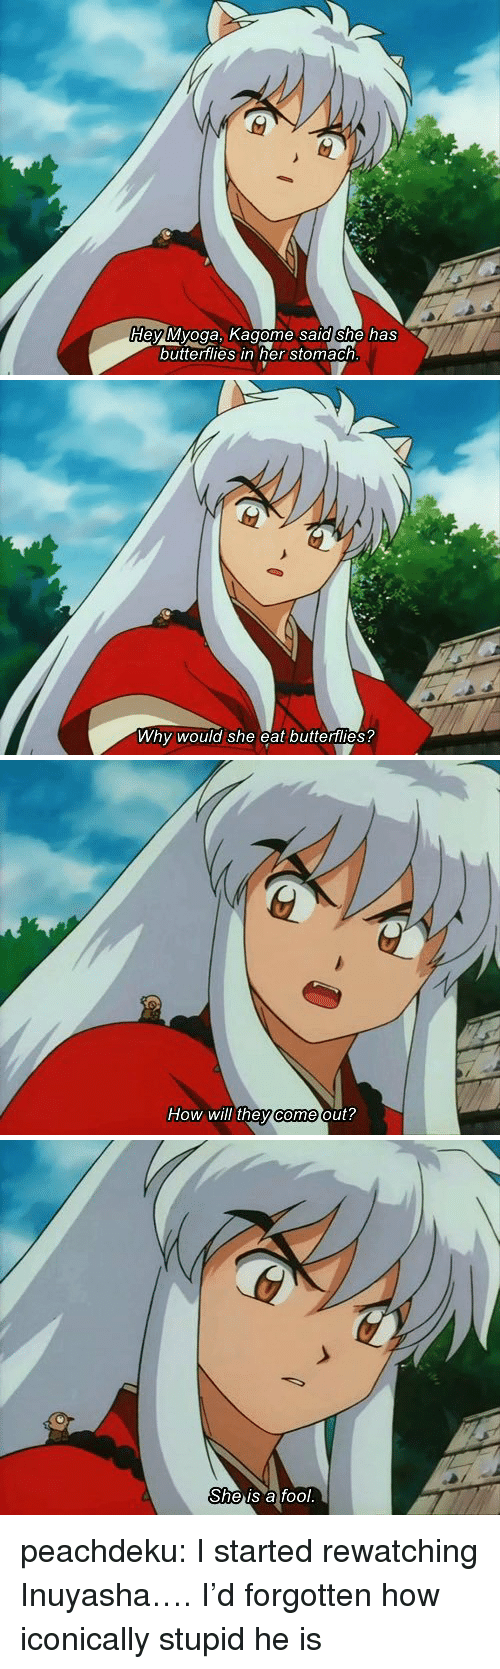 Dey Myoga Kagome Sald She Has Buttertlies In Her Stomach Why Would